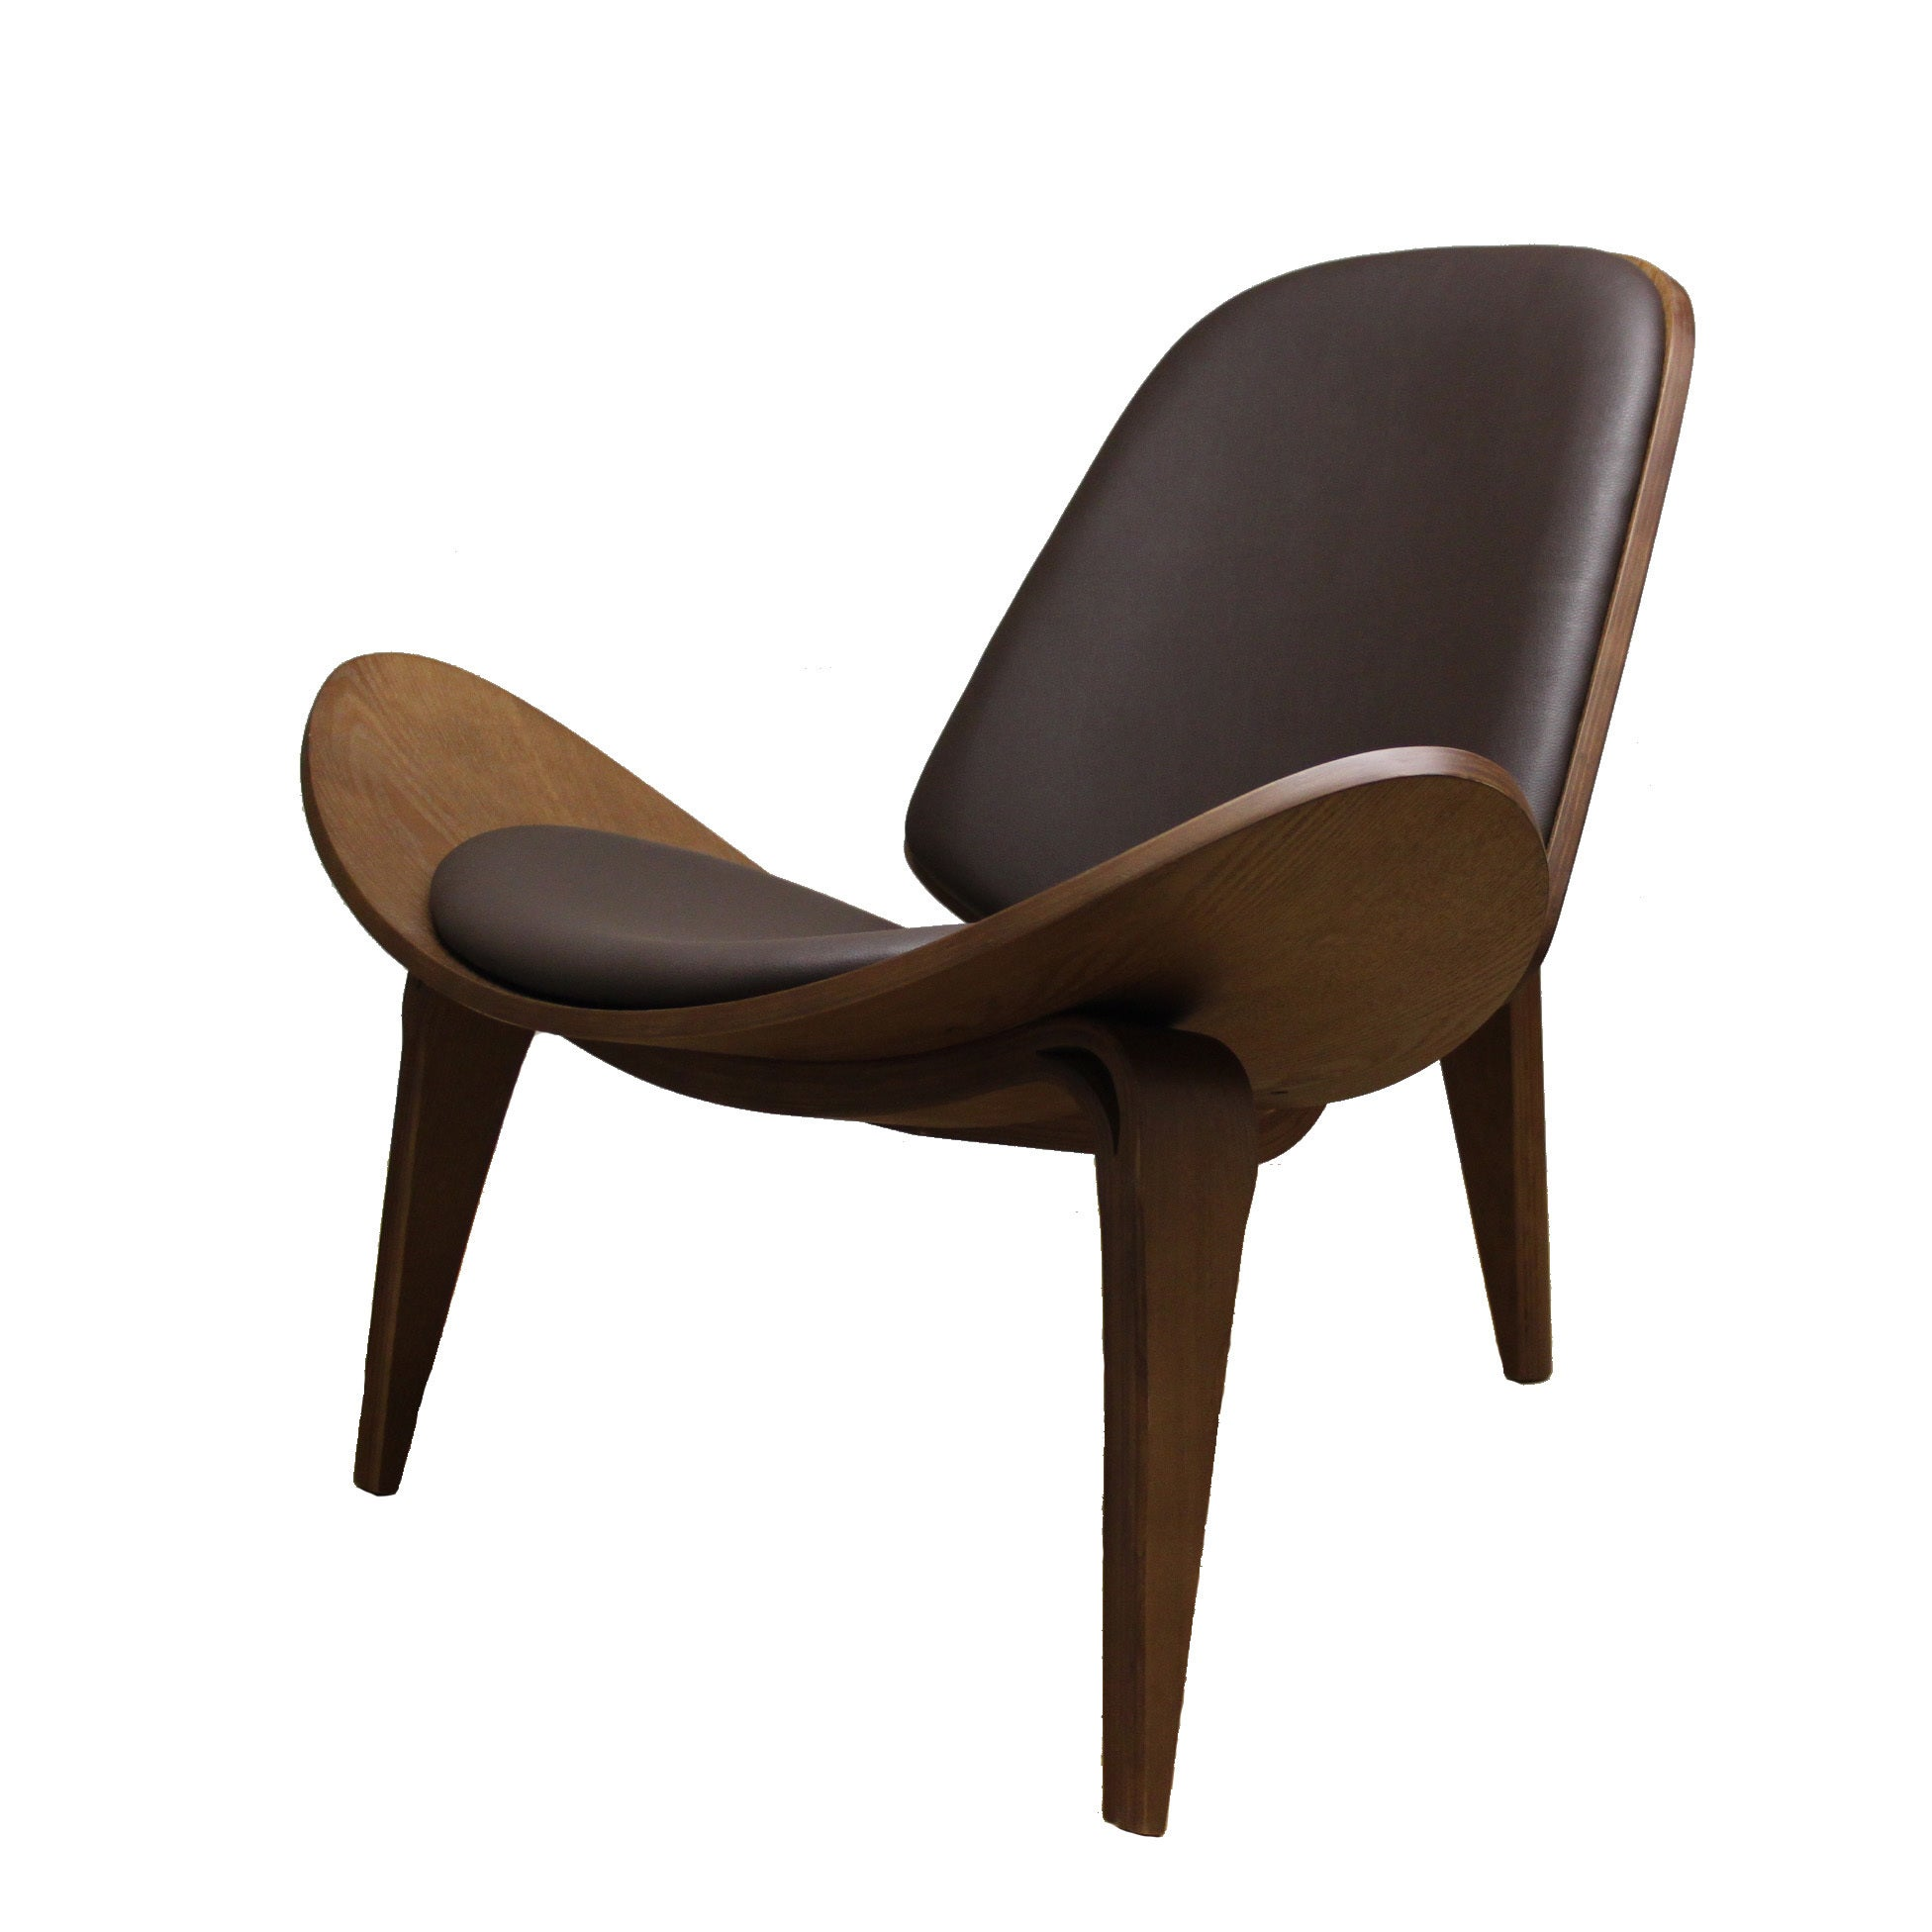 shop modern shell chair free shipping today overstock com 8459799